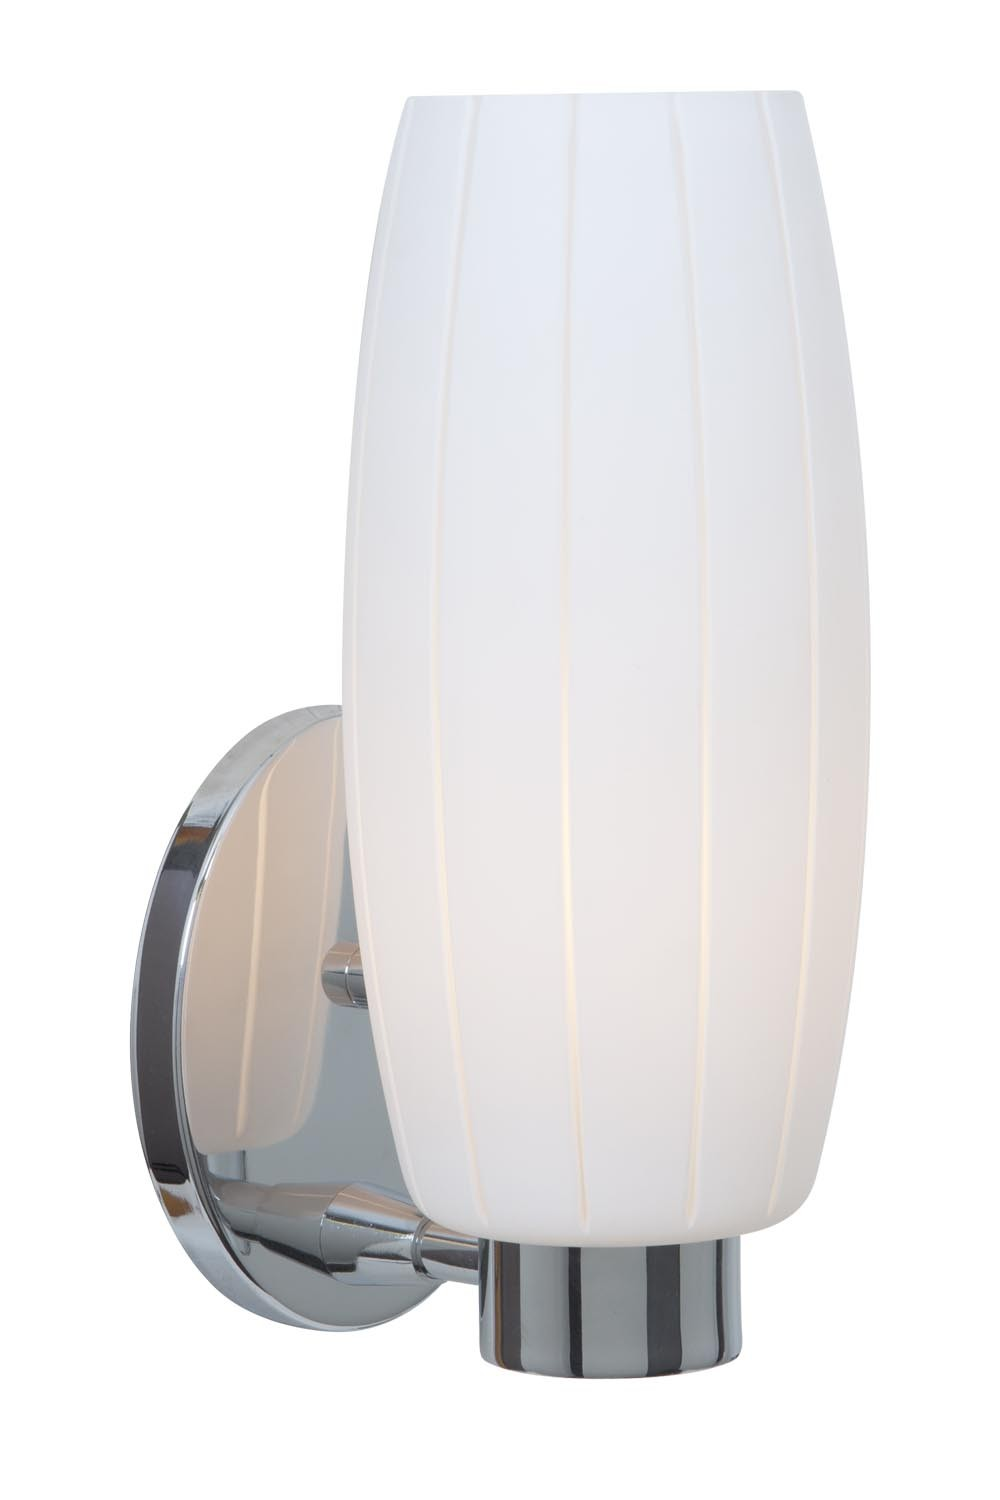 Access Lighting 23970bswht Pearl Wall Fixture. Zen Bathroom. Back Porch Designs. Back Yard Patio. Electronic Charging Station. Deck Bench. Beautiful Kitchen. Doorbell Sound. Avanti Furniture